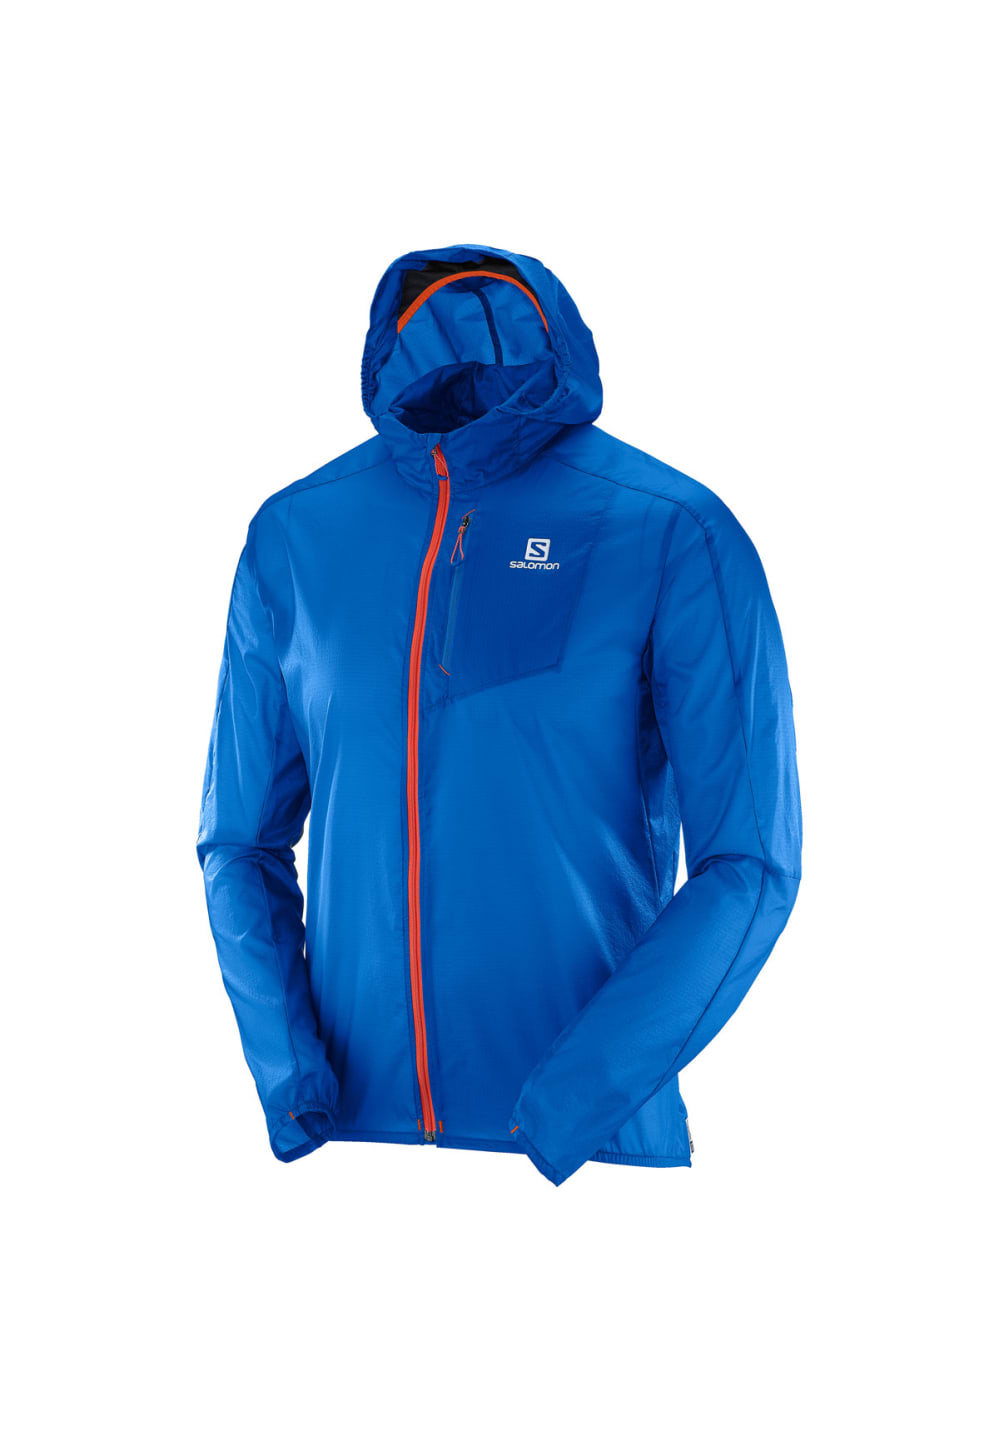 acheter pas cher aec80 17c3a Salomon Fast Wing Hoodie - Running jackets for Men - Blue